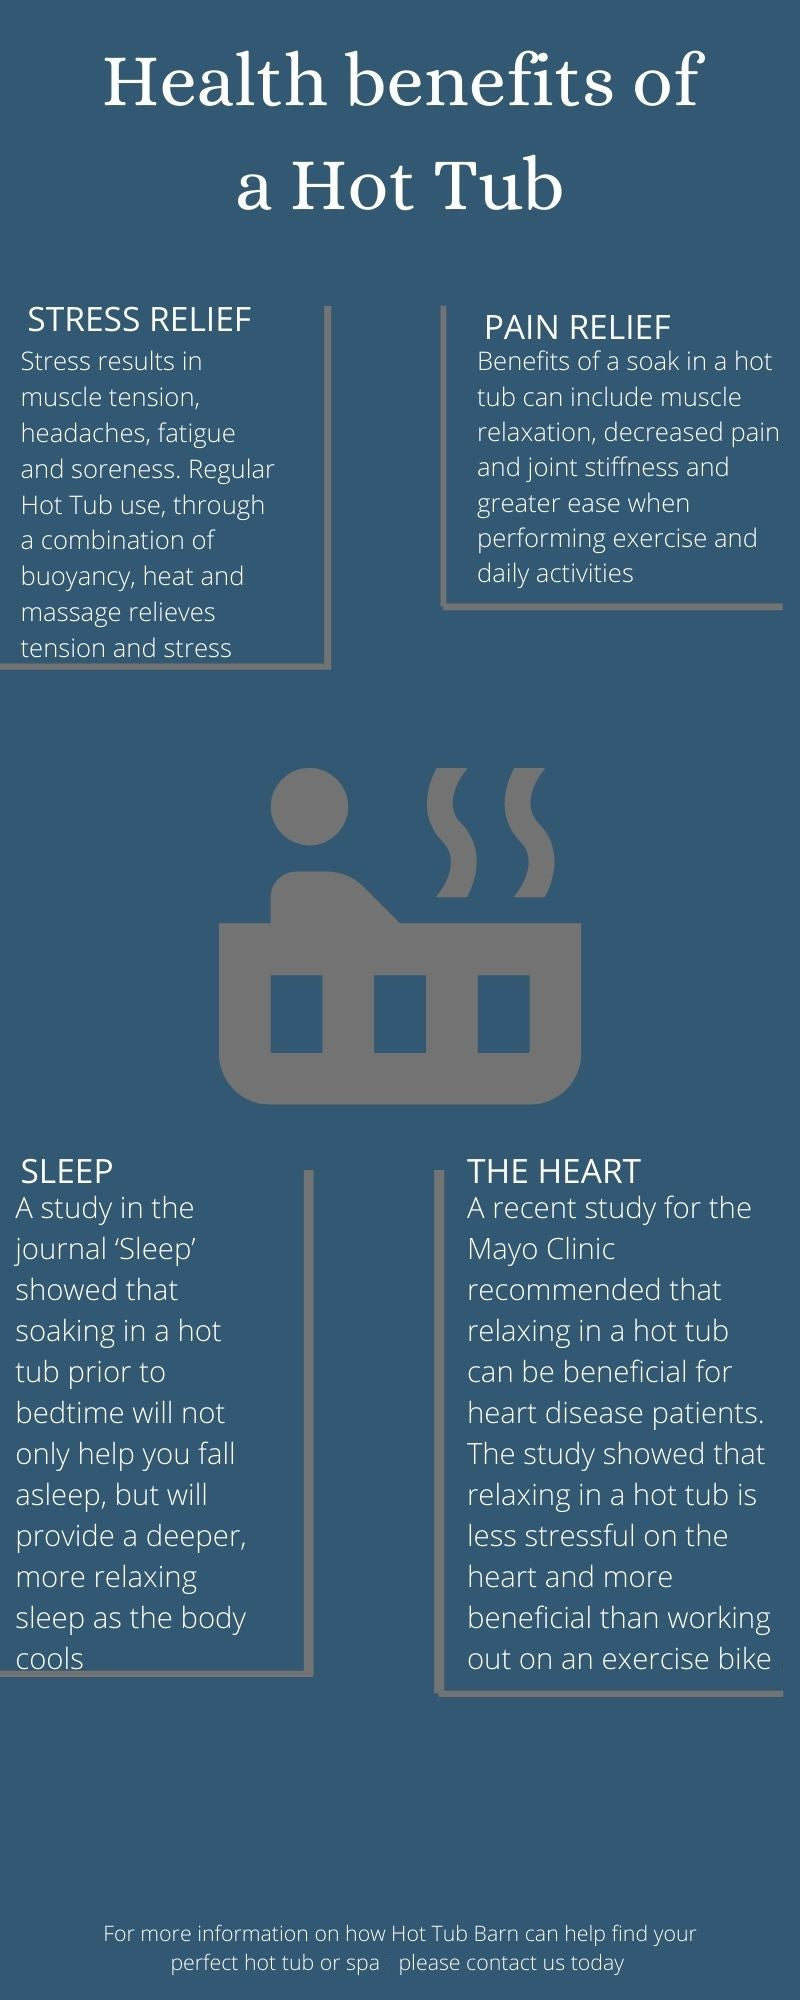 the 4 main benefits of owning a hot tub